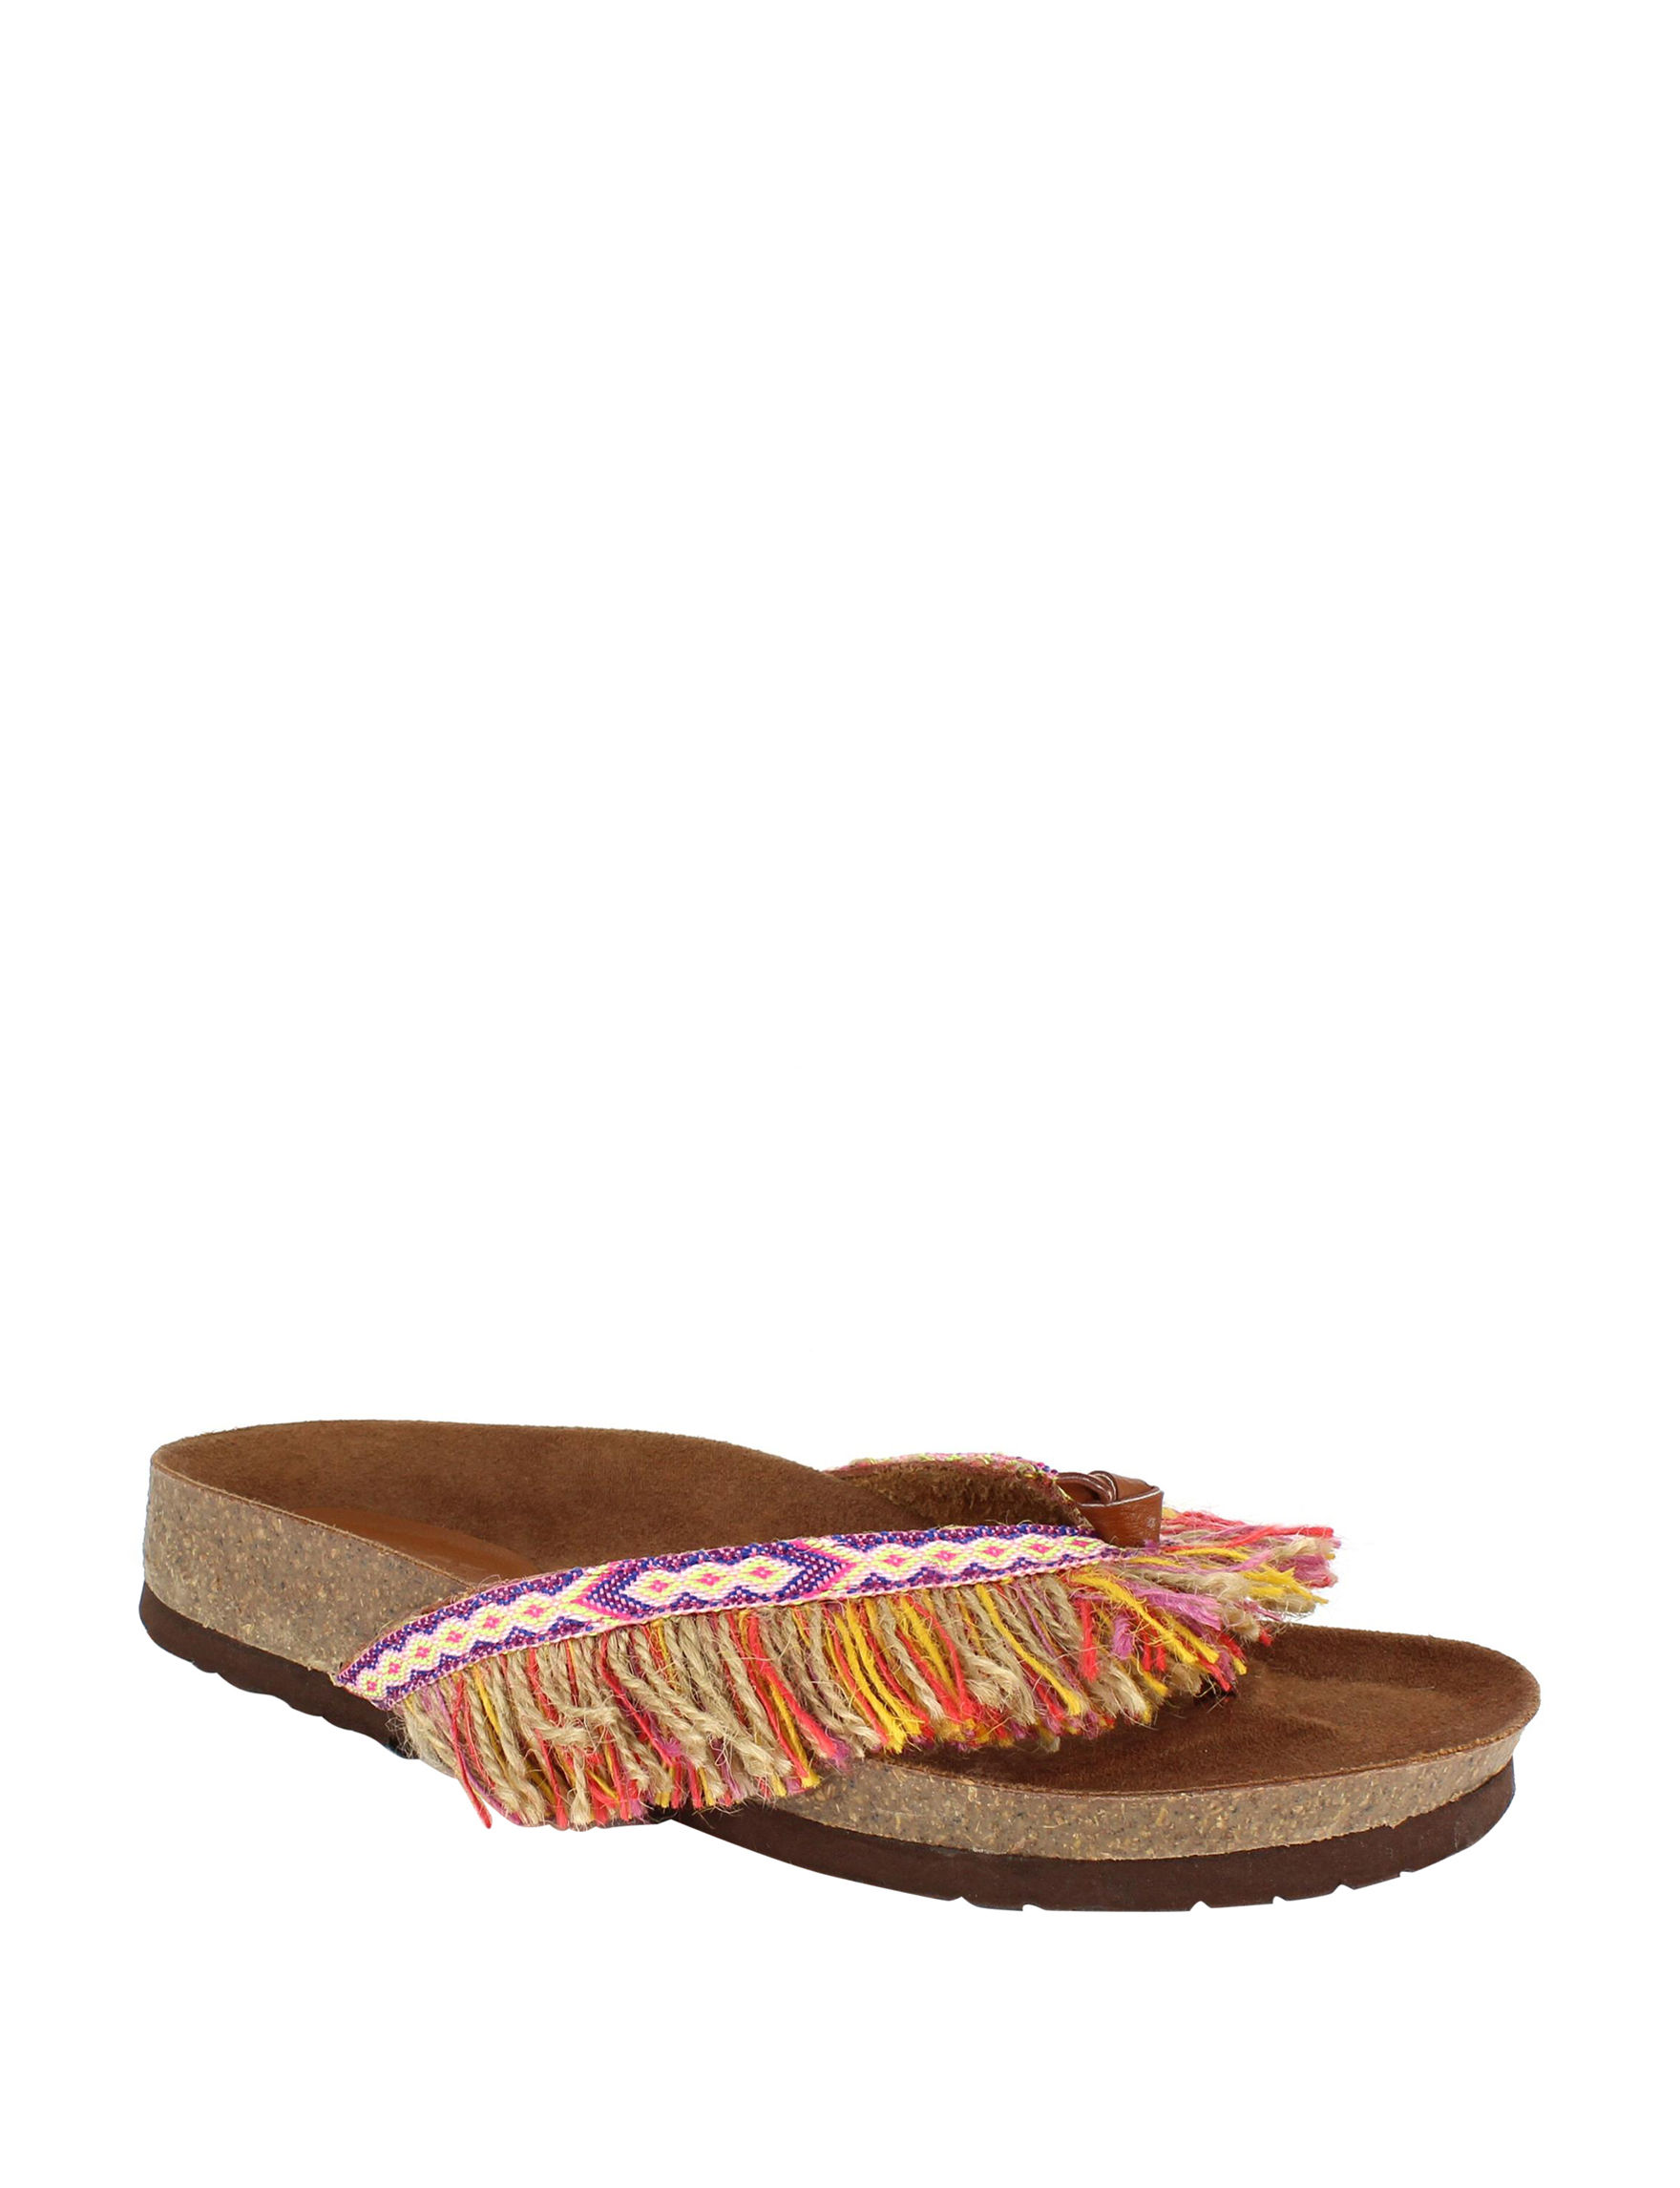 Dolce by Mojo Moxy Cappy ... Women's Sandals big sale for sale lowest price cheap price cheap sale great deals wBWIW29z1